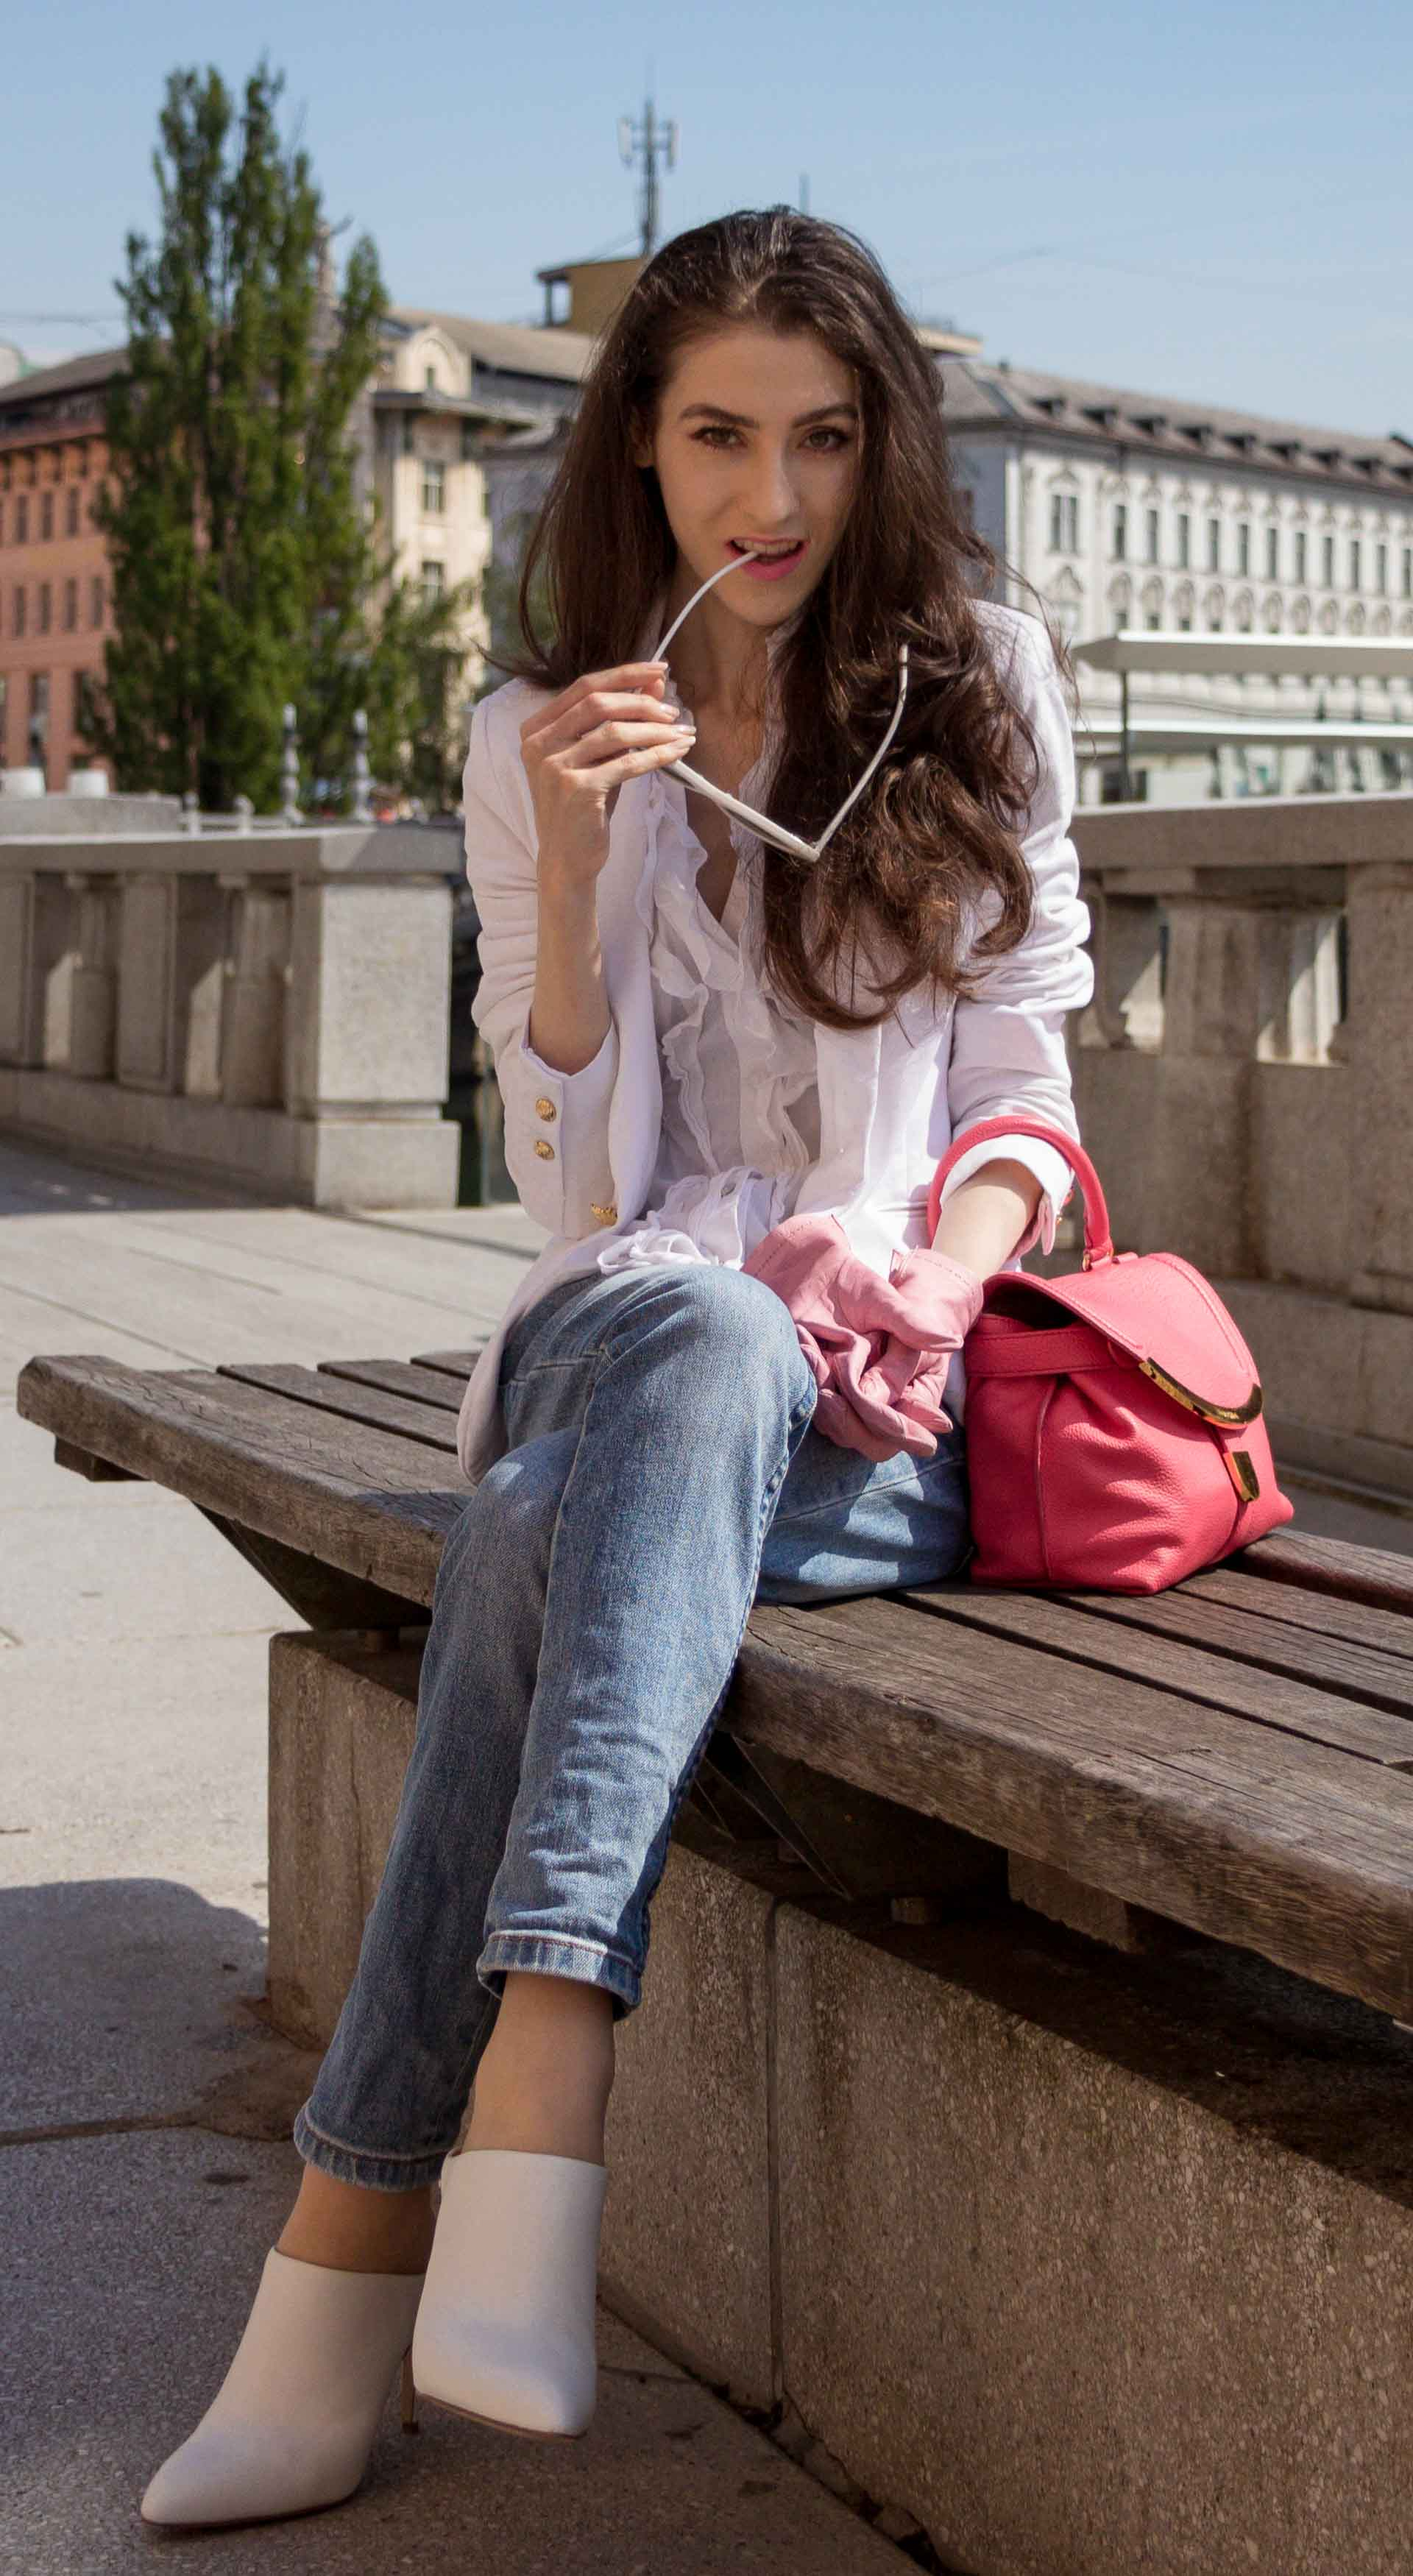 Veronika Lipar Fashion Blogger of Brunette from Wall Street dressed in white mules, blue A.P.C. mom jeans, white fringe blouse, white blazer, pink gloves, pink top handle bag and Le Specs Lolita white cat eye sunglasses while sitting on the bench